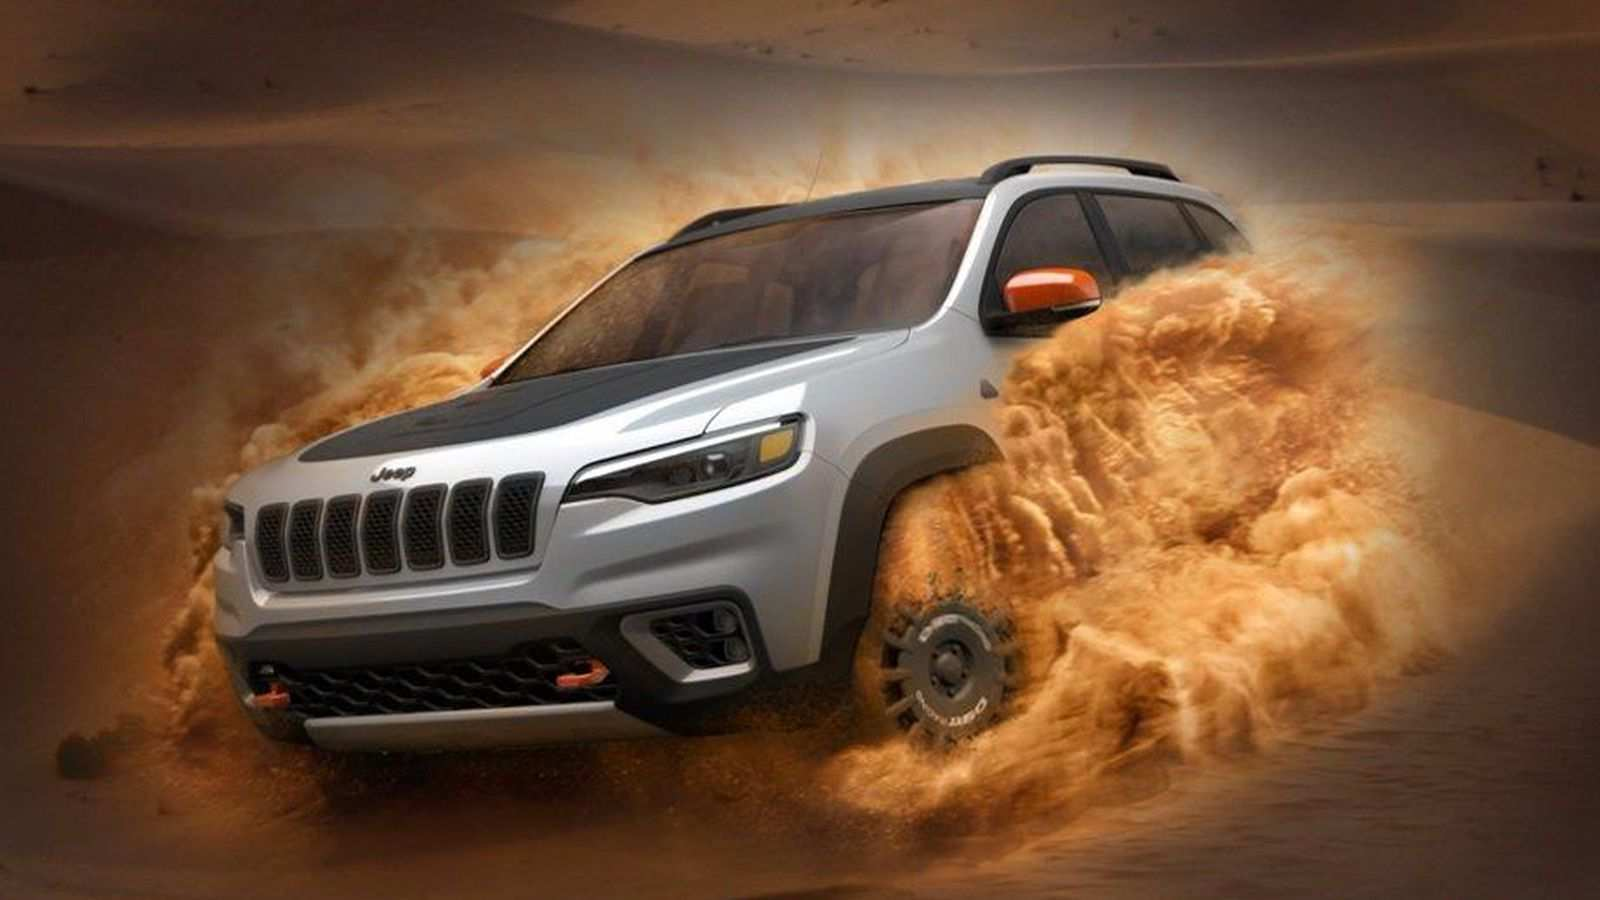 70 All New Jeep Cherokee Trailhawk 2020 First Drive for Jeep Cherokee Trailhawk 2020